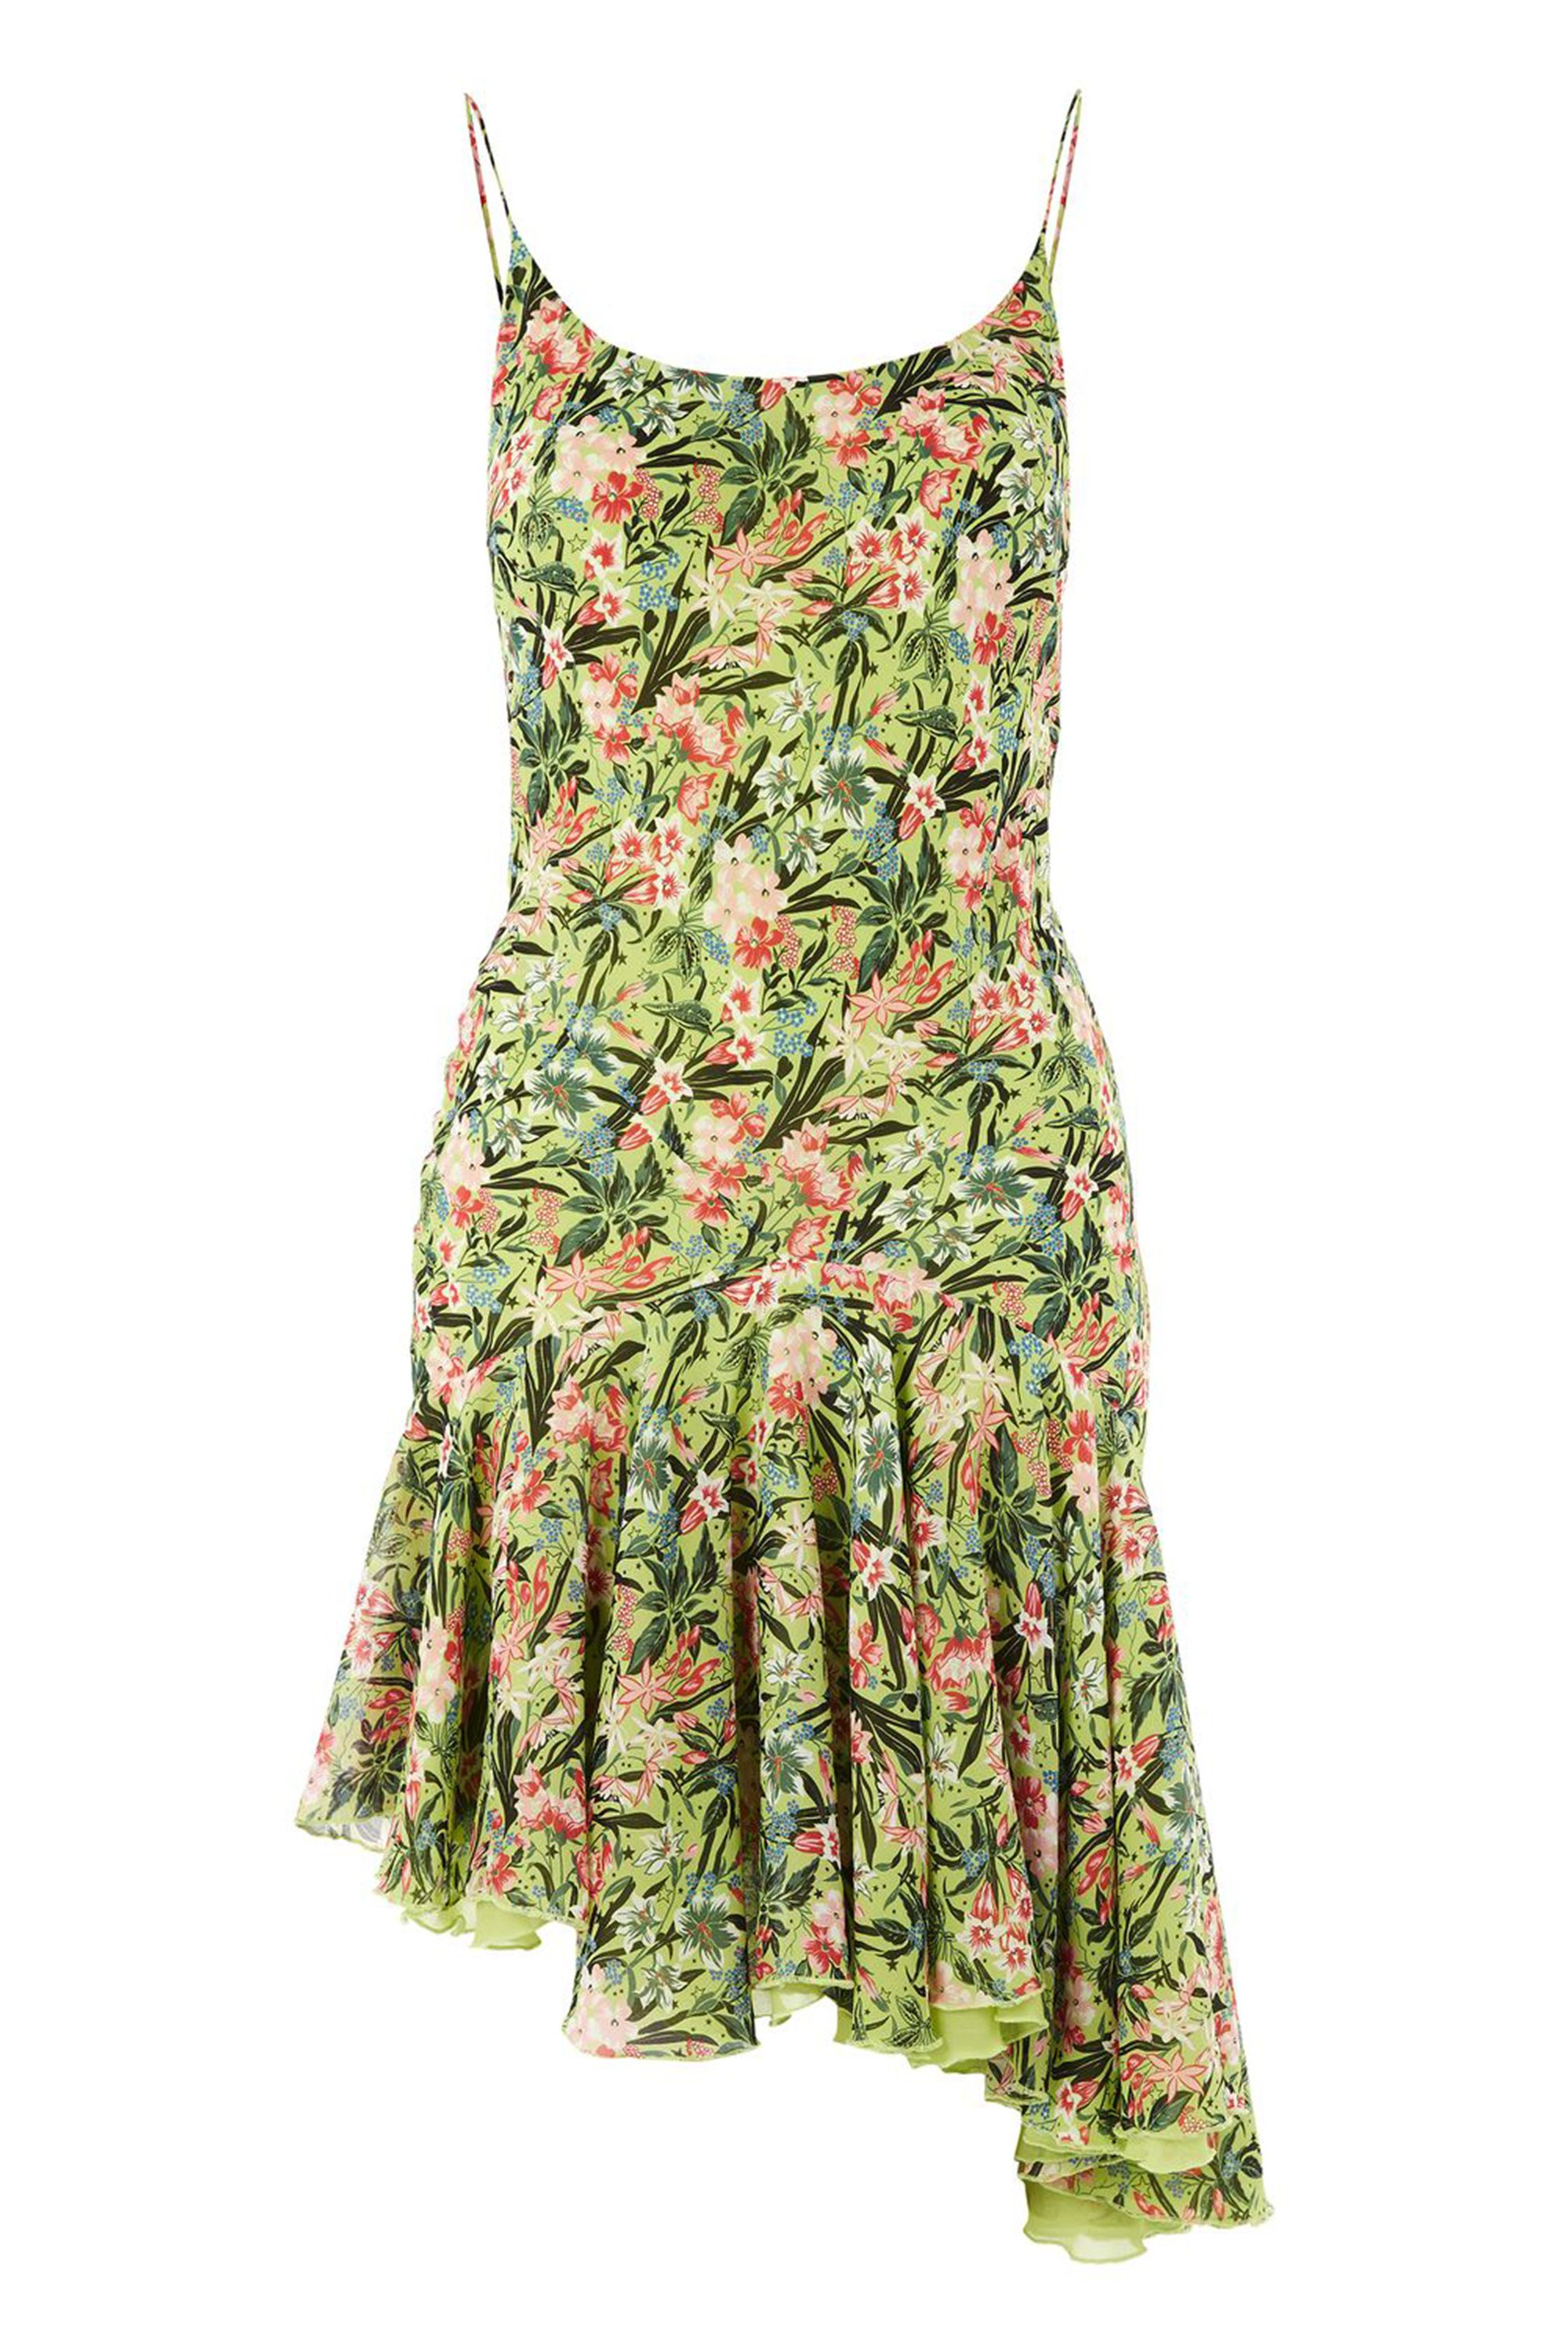 Cute Floral Dresses 33 Flirty Floral Dresses For Spring